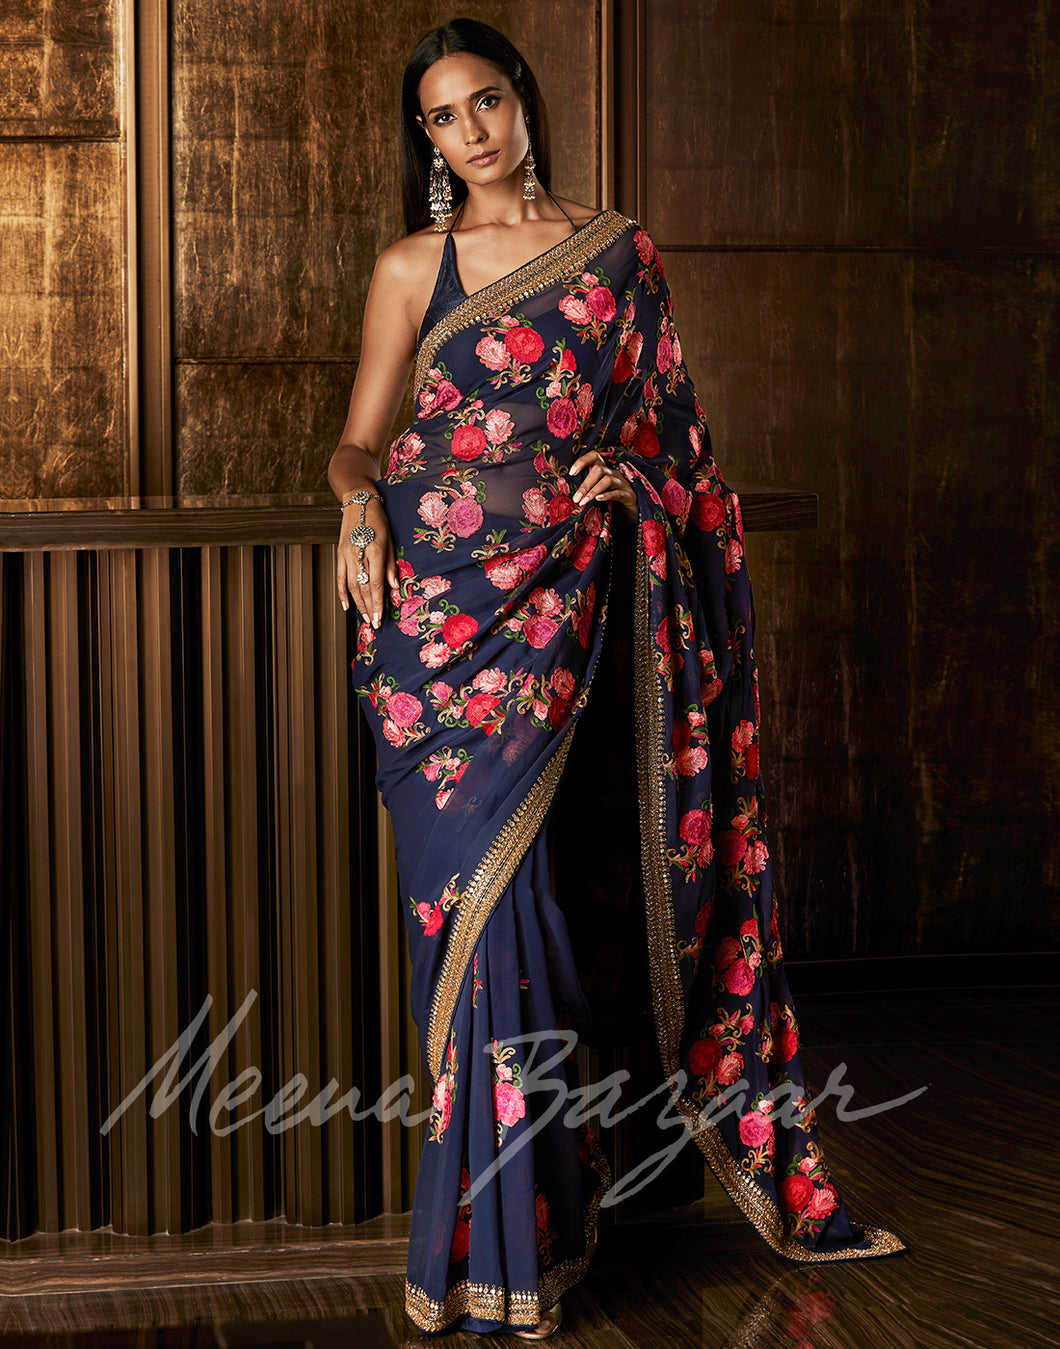 Meena Bazaar: Floral Embroidered Georgette Saree With Embellished Border